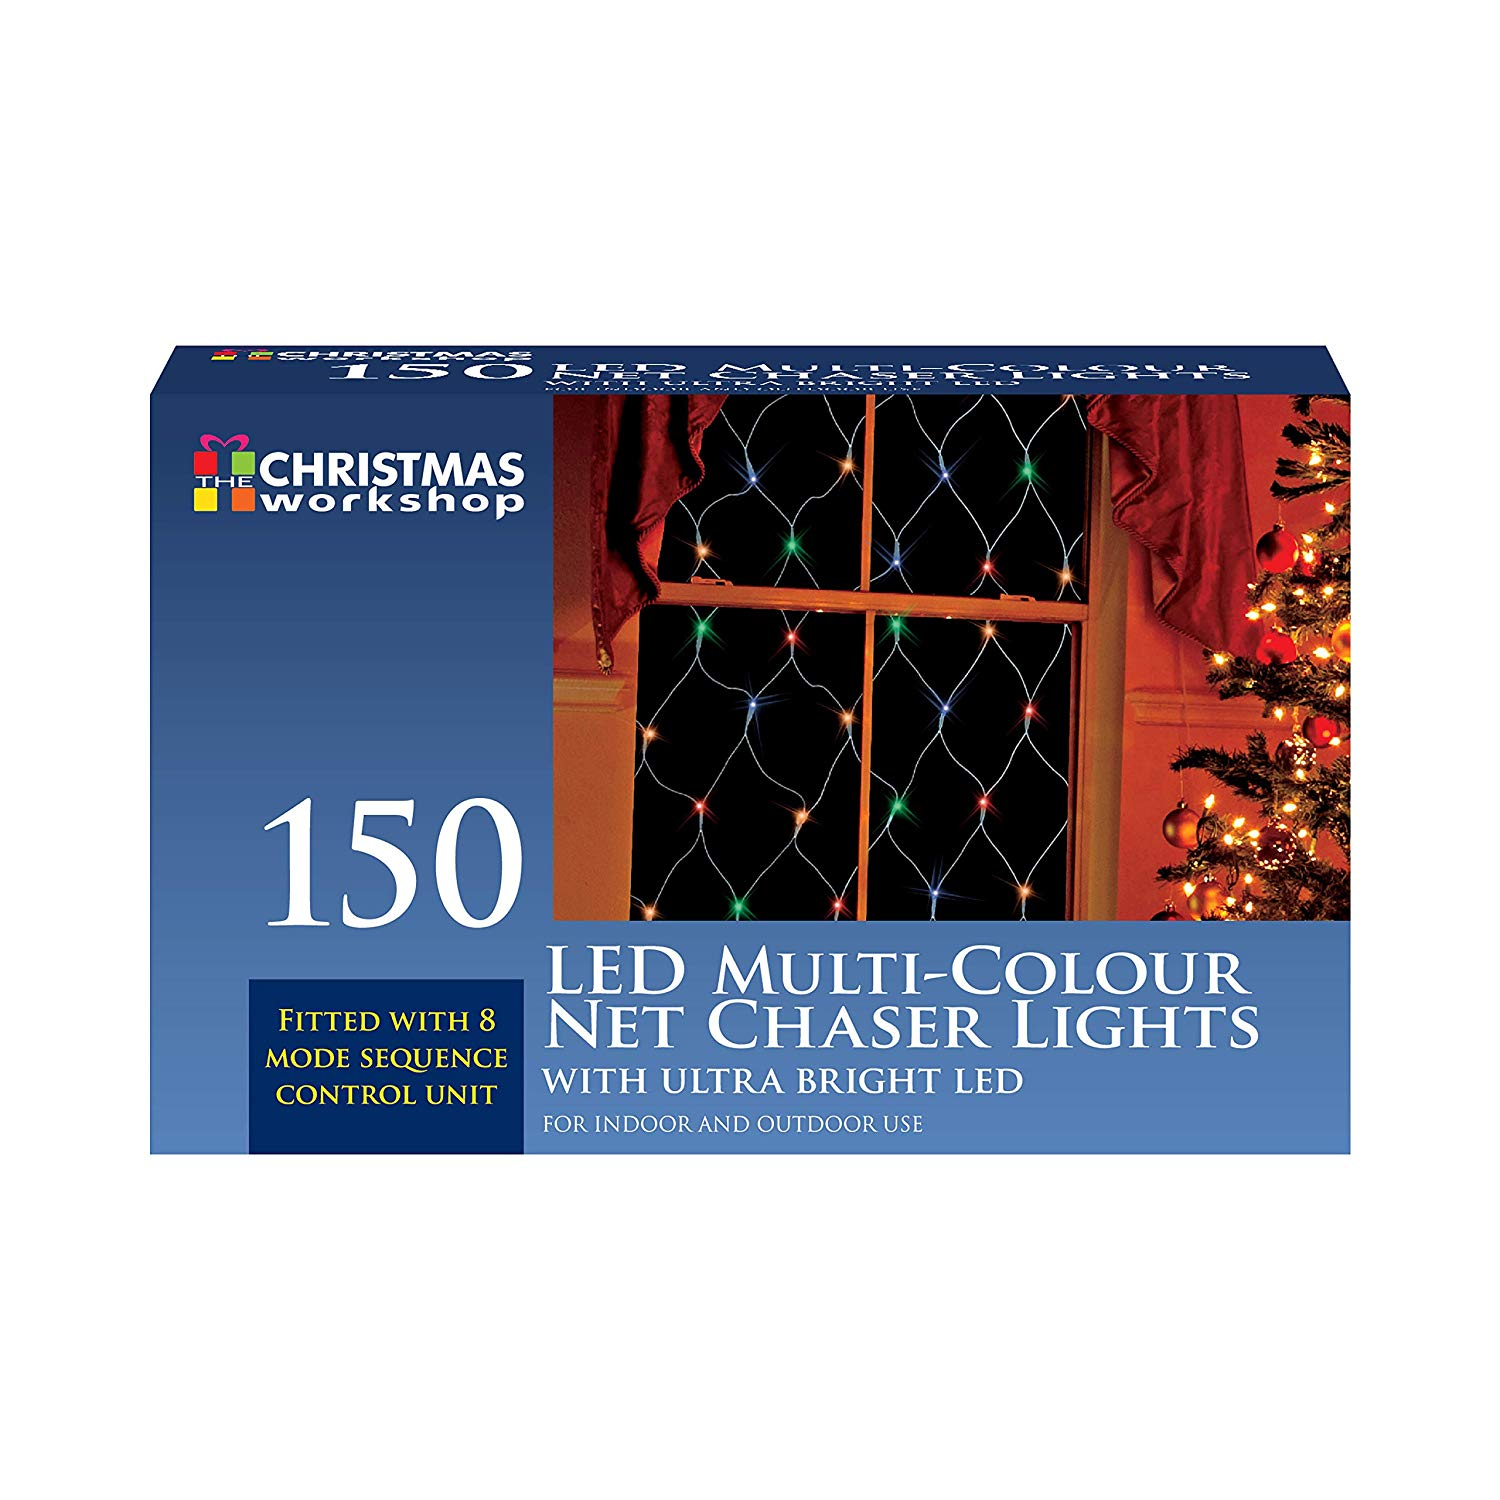 150 NET CHASER MODE BRIGHT LIGHT BULB CHRISTMAS WINDOW XMAS FOR INDOOR OUTDOOR